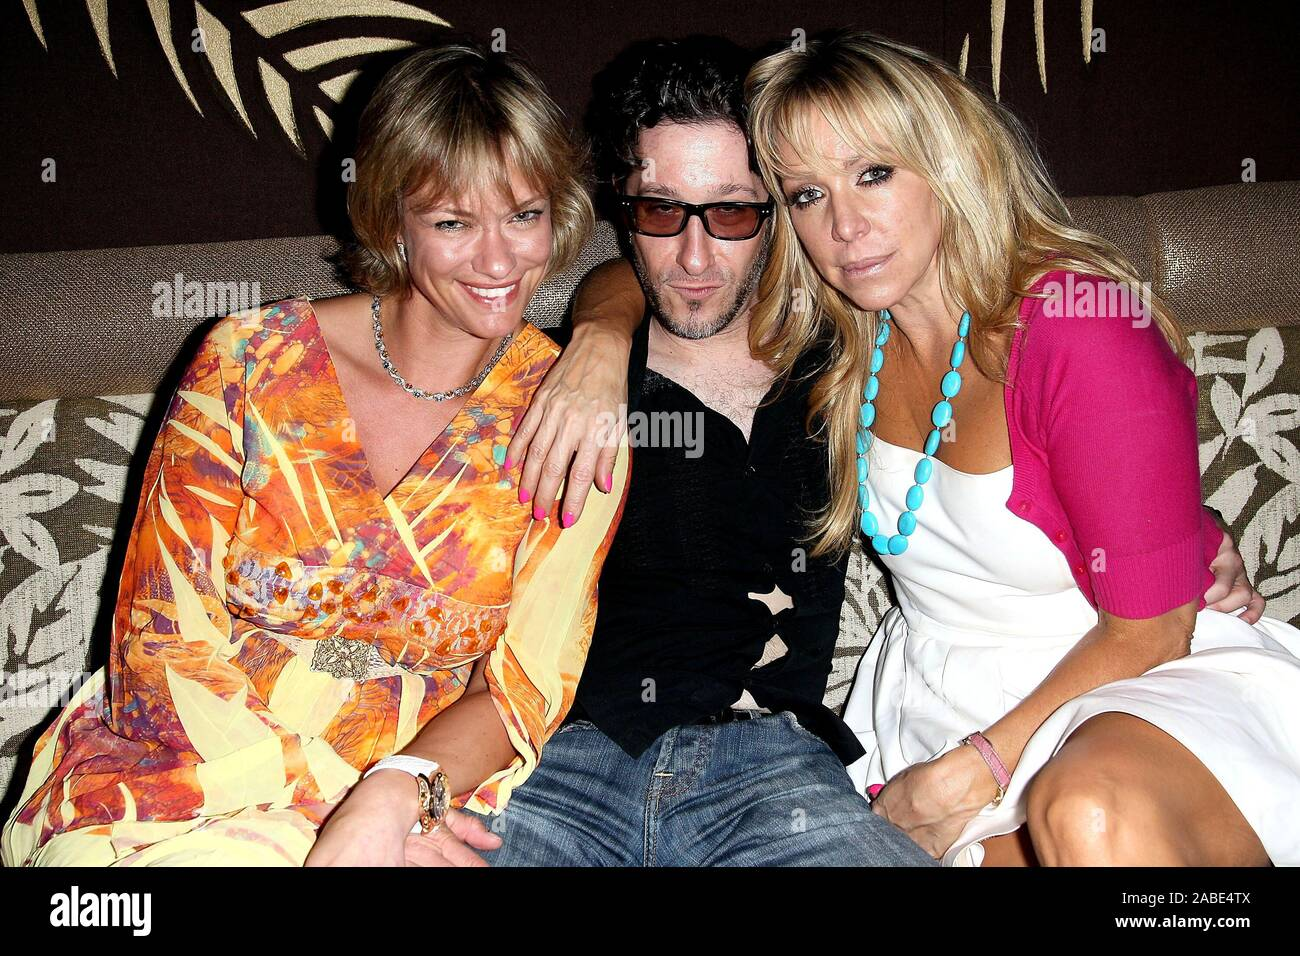 Benjamin Rothschild High Resolution Stock Photography And Images Alamy